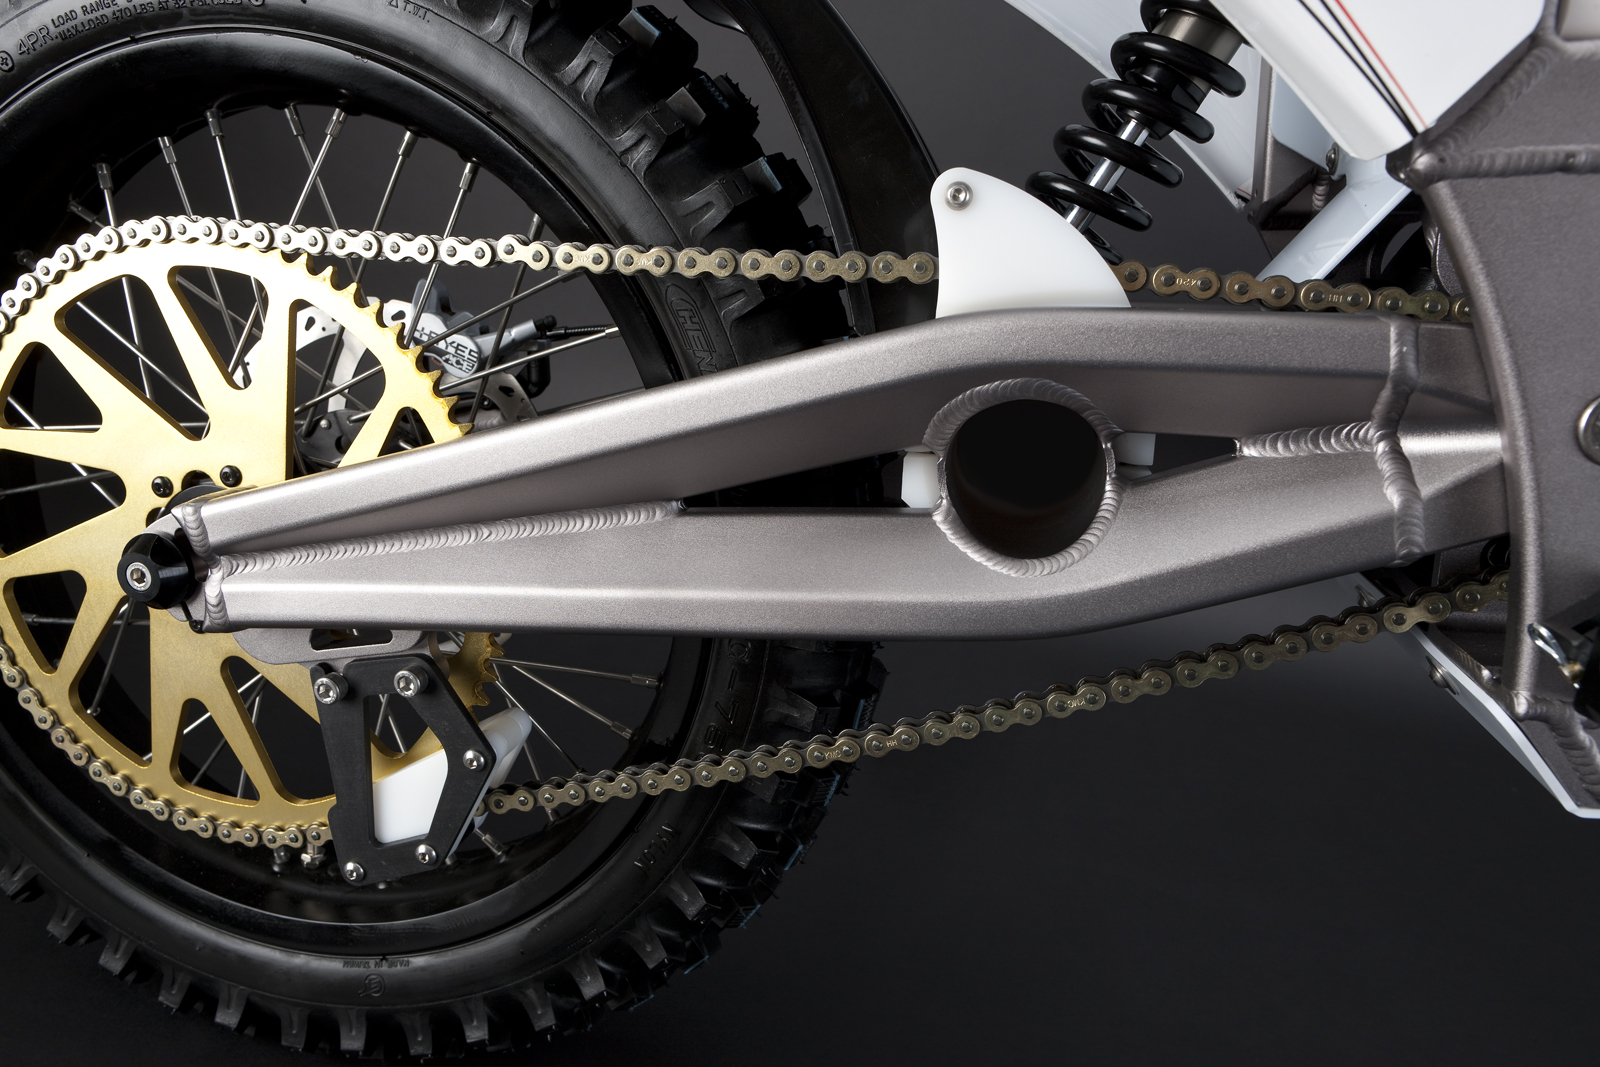 '.2010 Zero MX Electric Motorcycle: Swing Arm.'